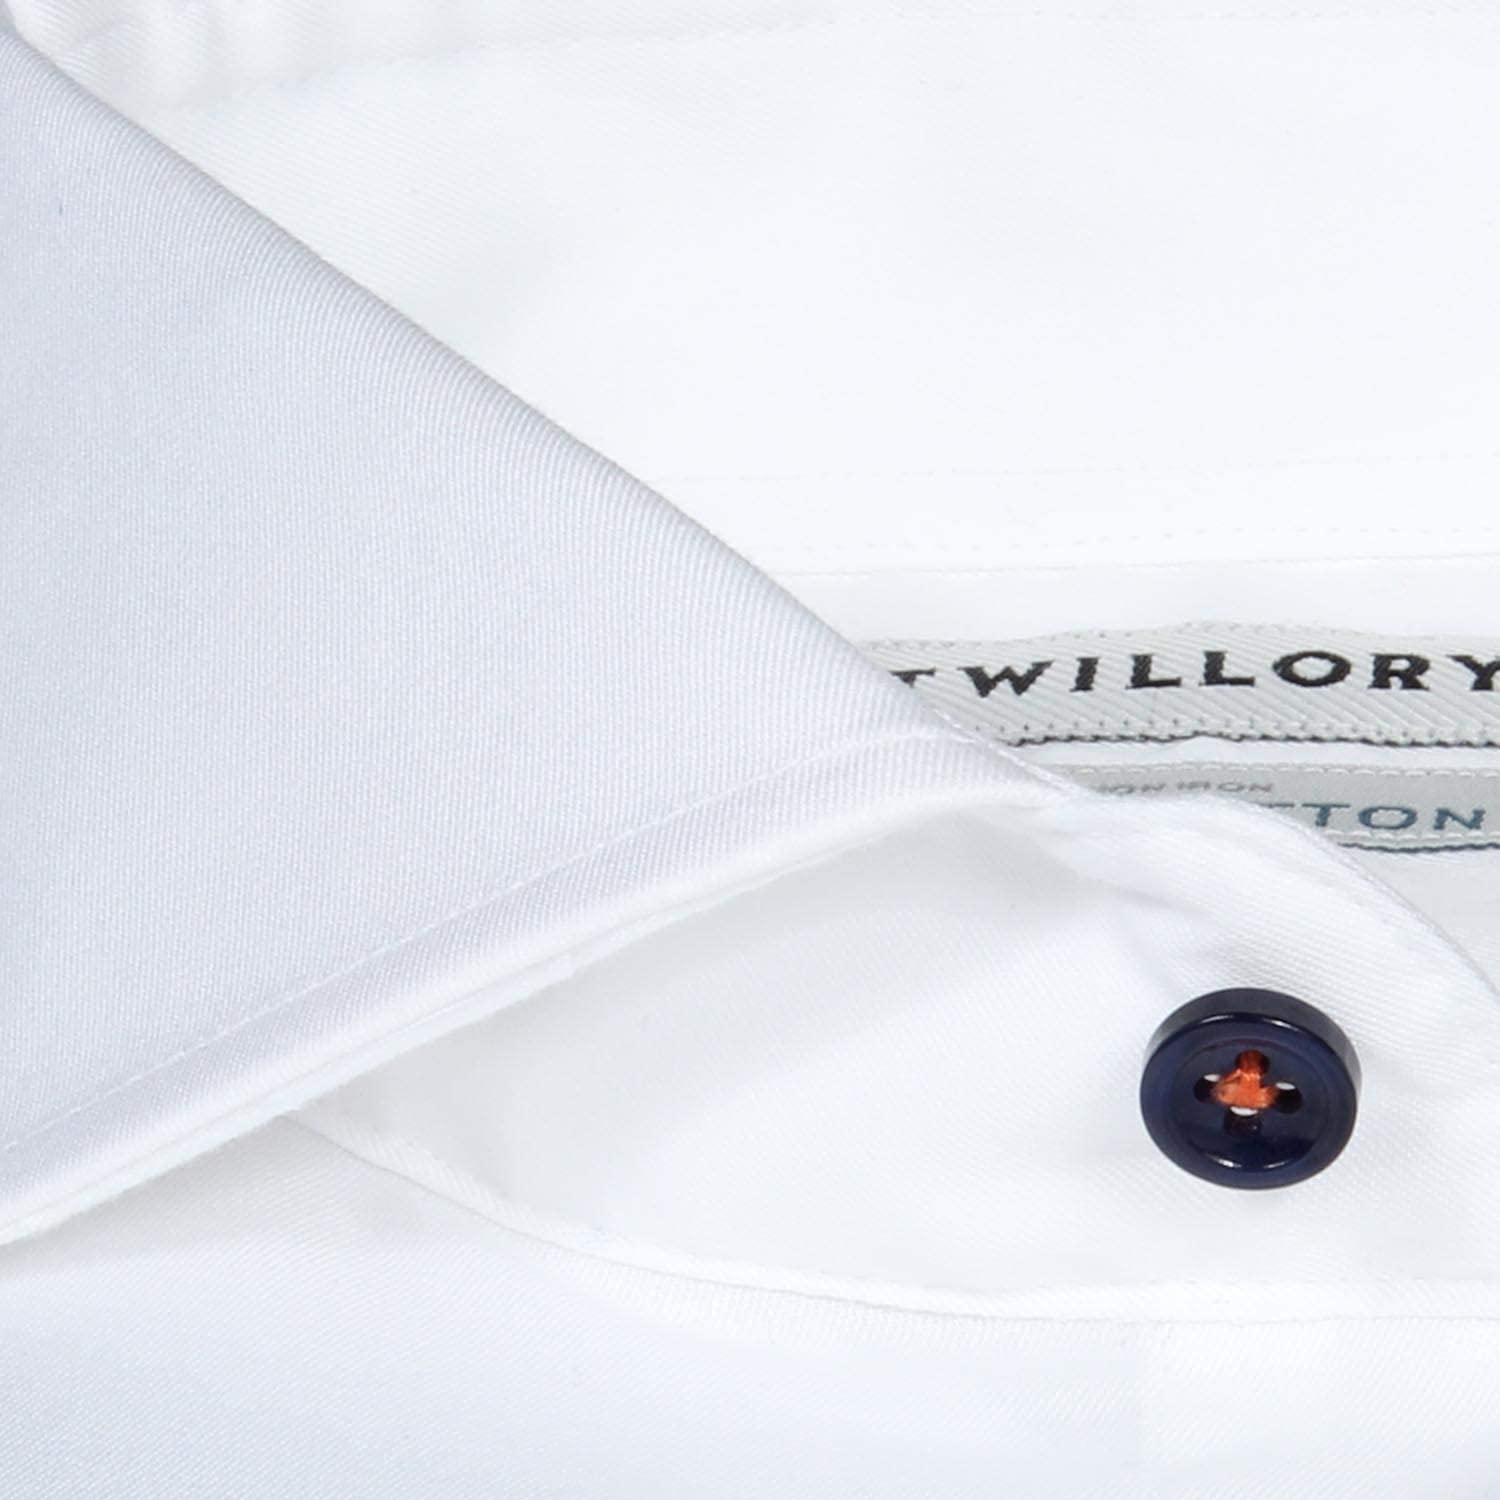 Twillory Solid Non-Iron Tailored Slim Fit Button Down Dress Shirt for Men